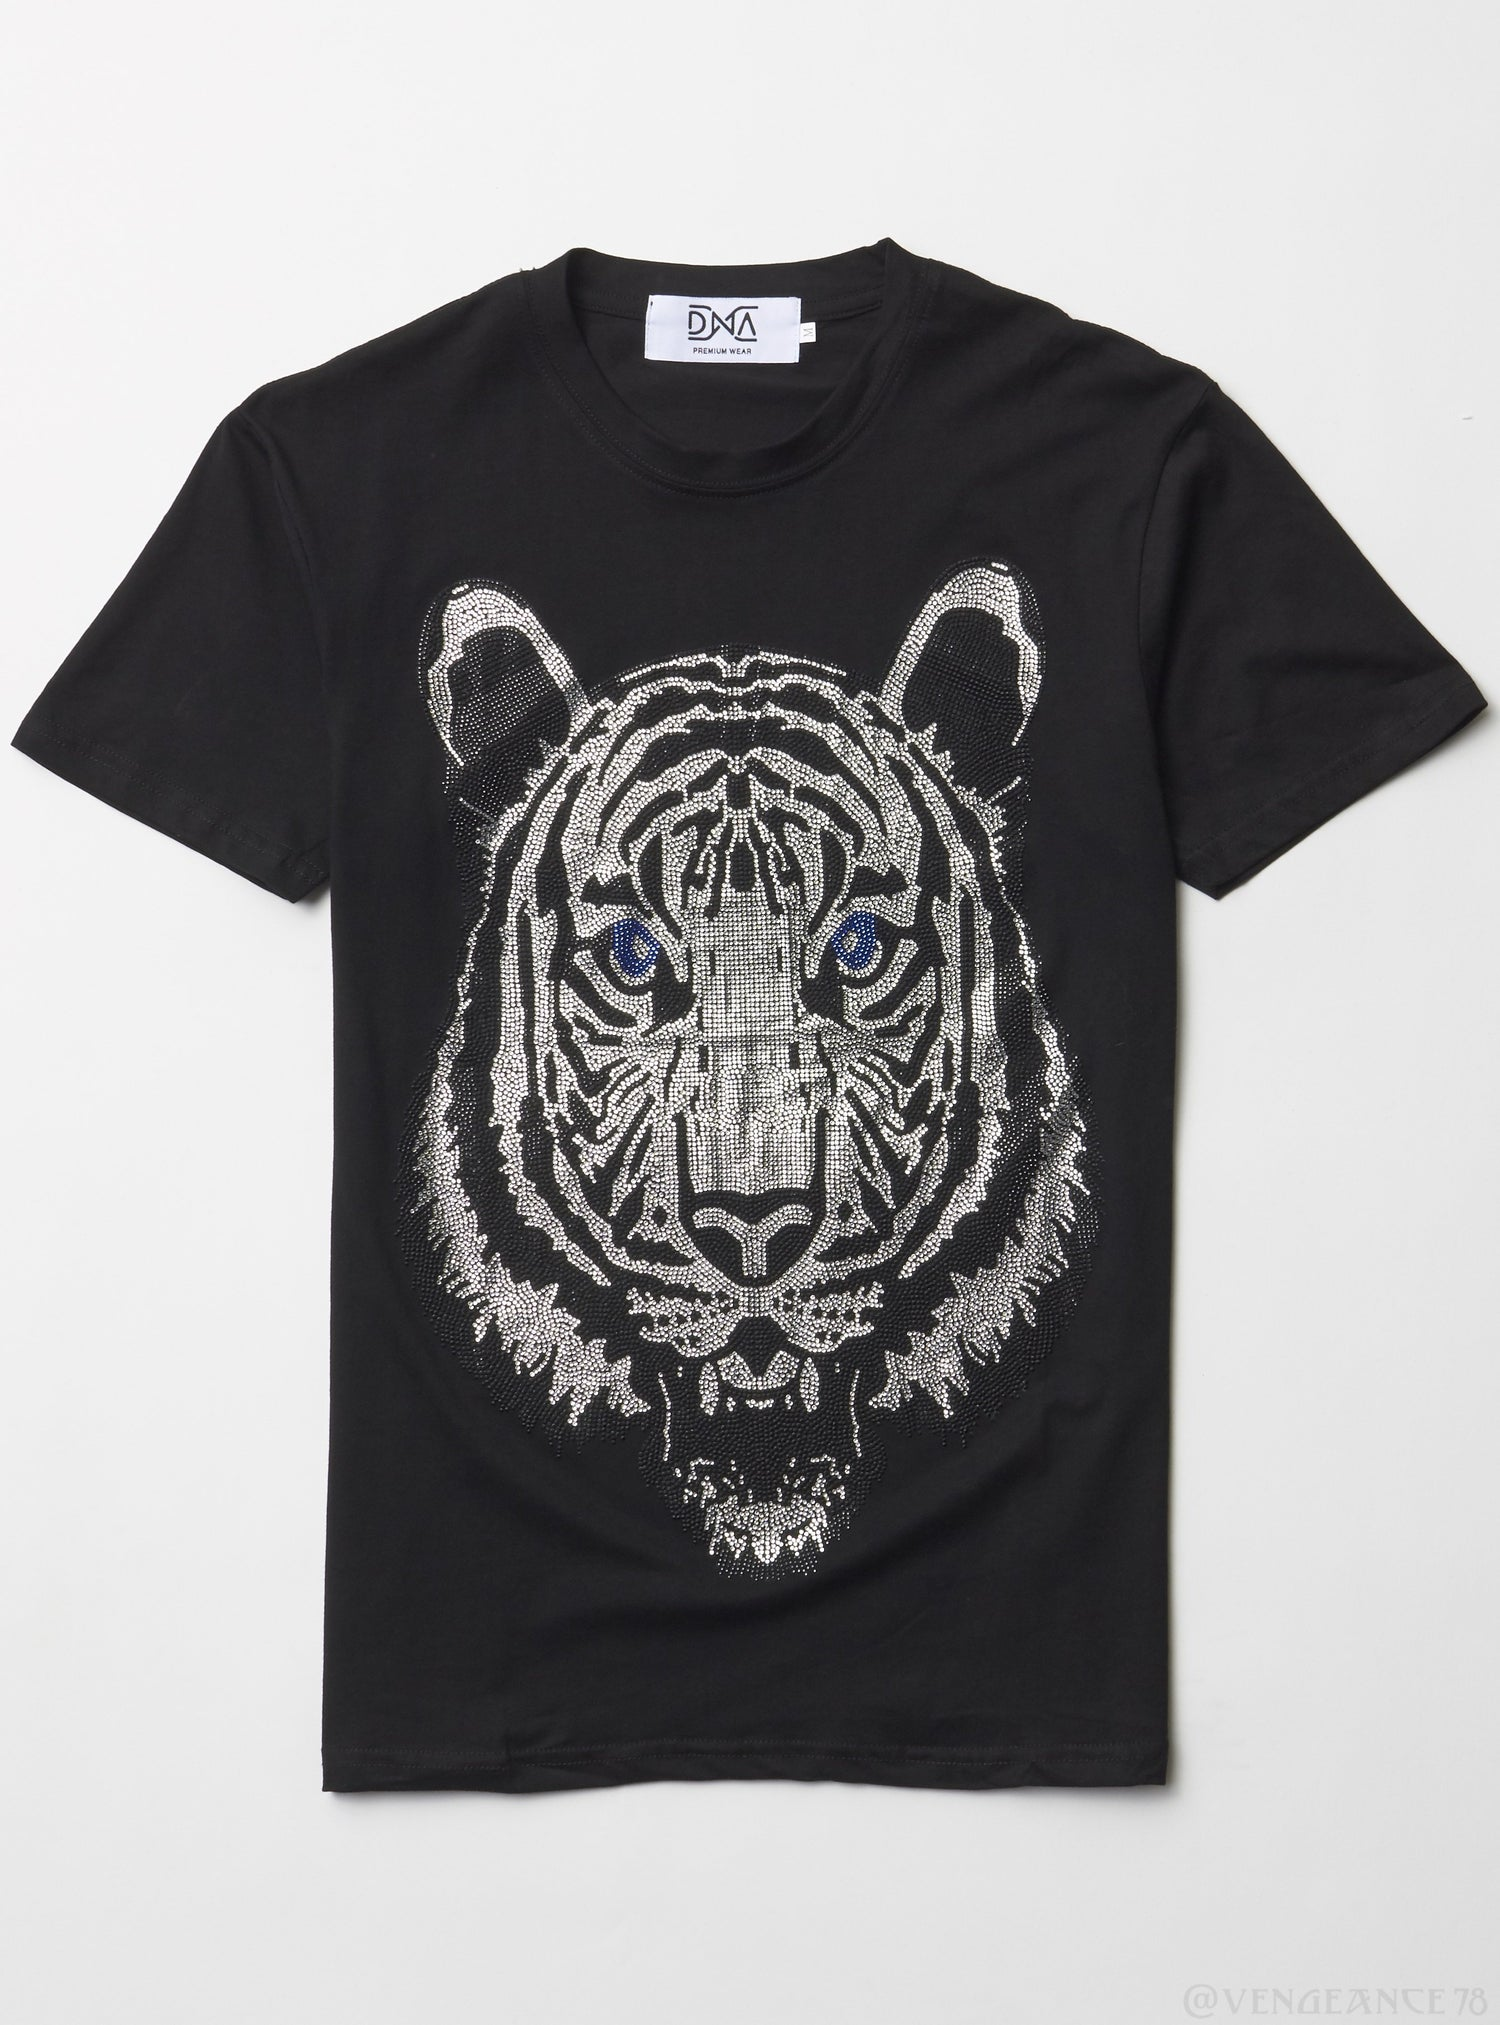 DNA T-Shirt - Tiger - Black